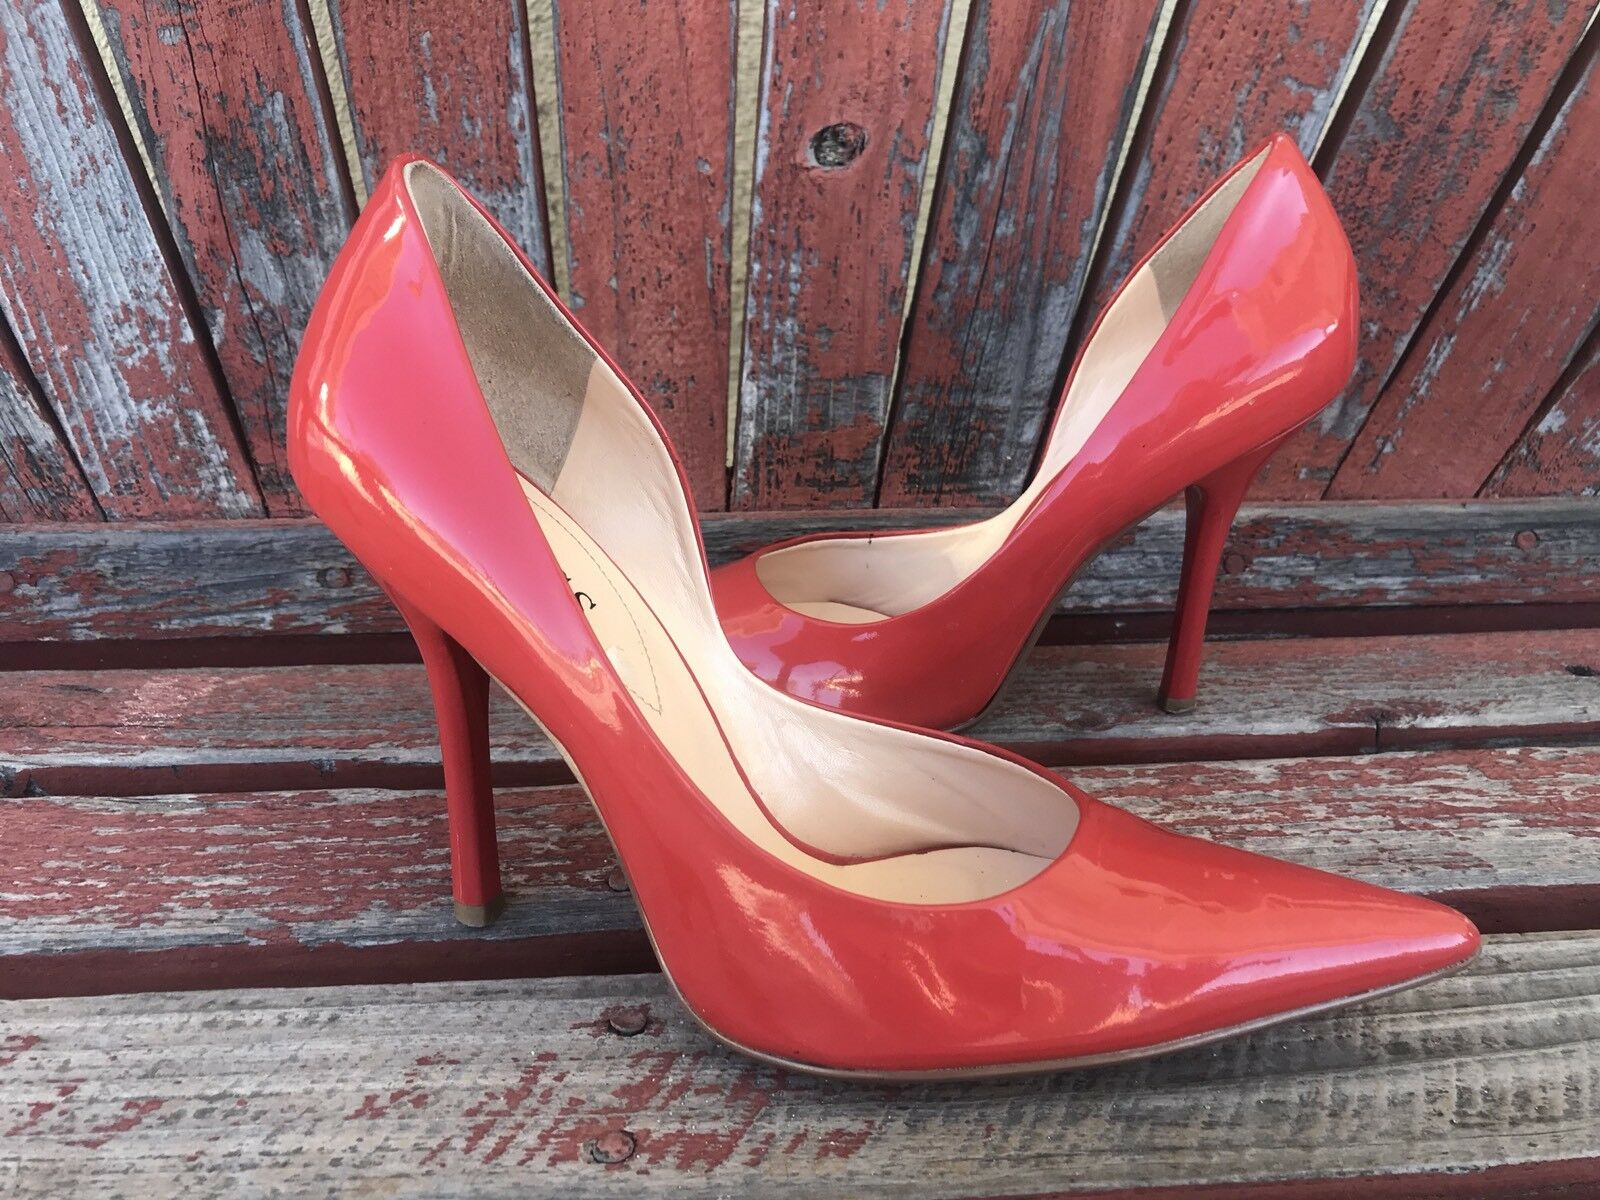 ReD ORanGe EUC 8.5 PaTeNT Leder Pointy Toe CARRIE Stiletto Heels PUMP GuESS